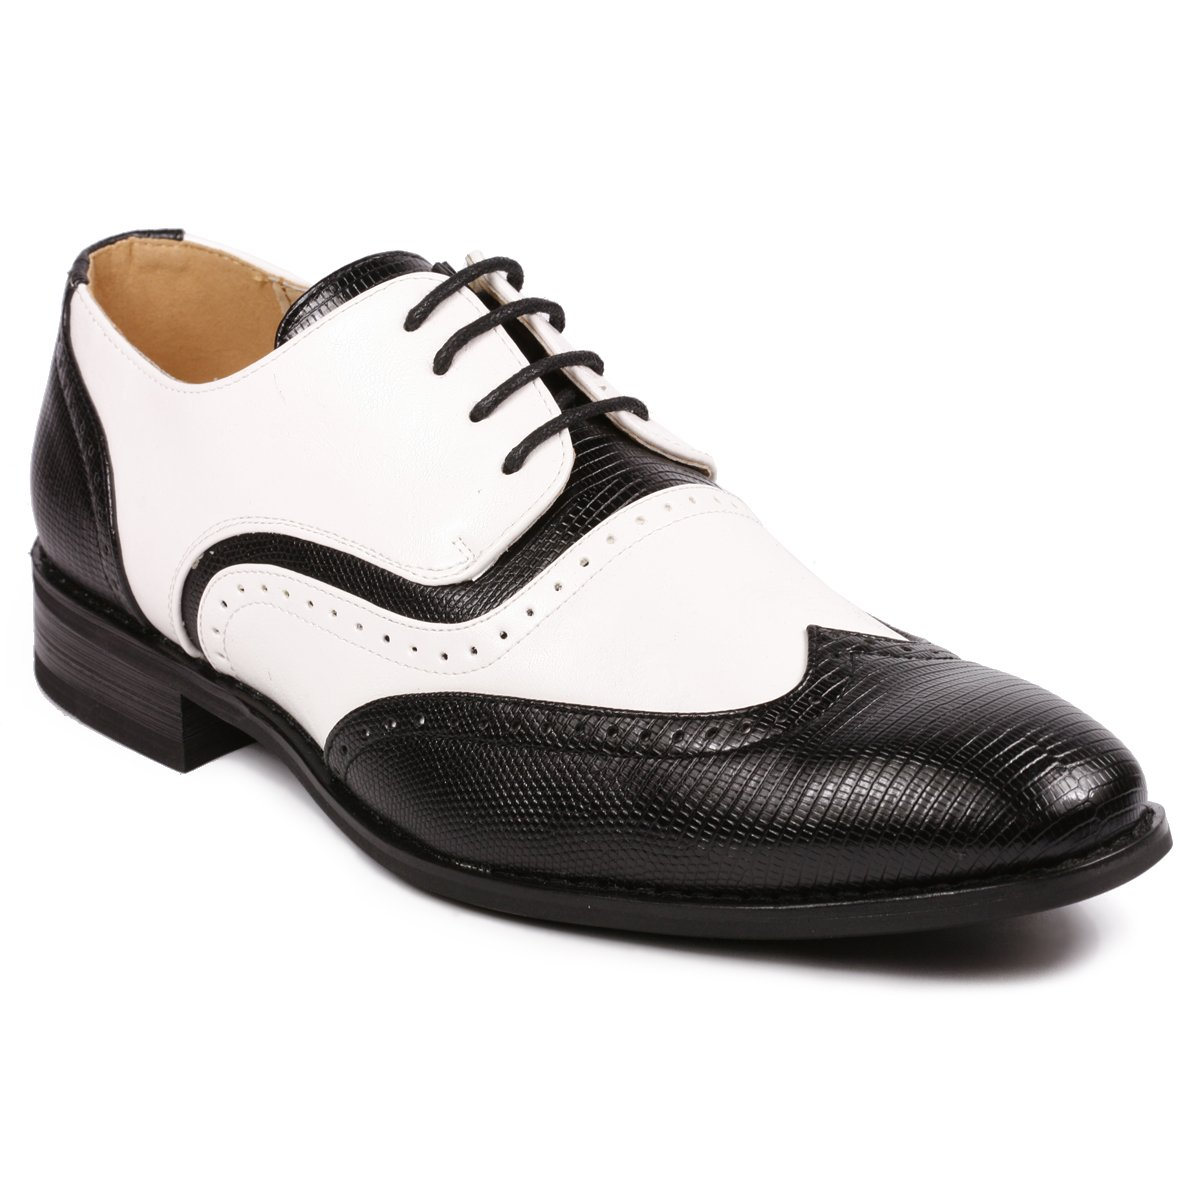 1920s Boardwalk Empire Shoes Metrocharm MC113 Mens Wing Tip Perforated Lace Up Oxford Dress Shoes $39.99 AT vintagedancer.com